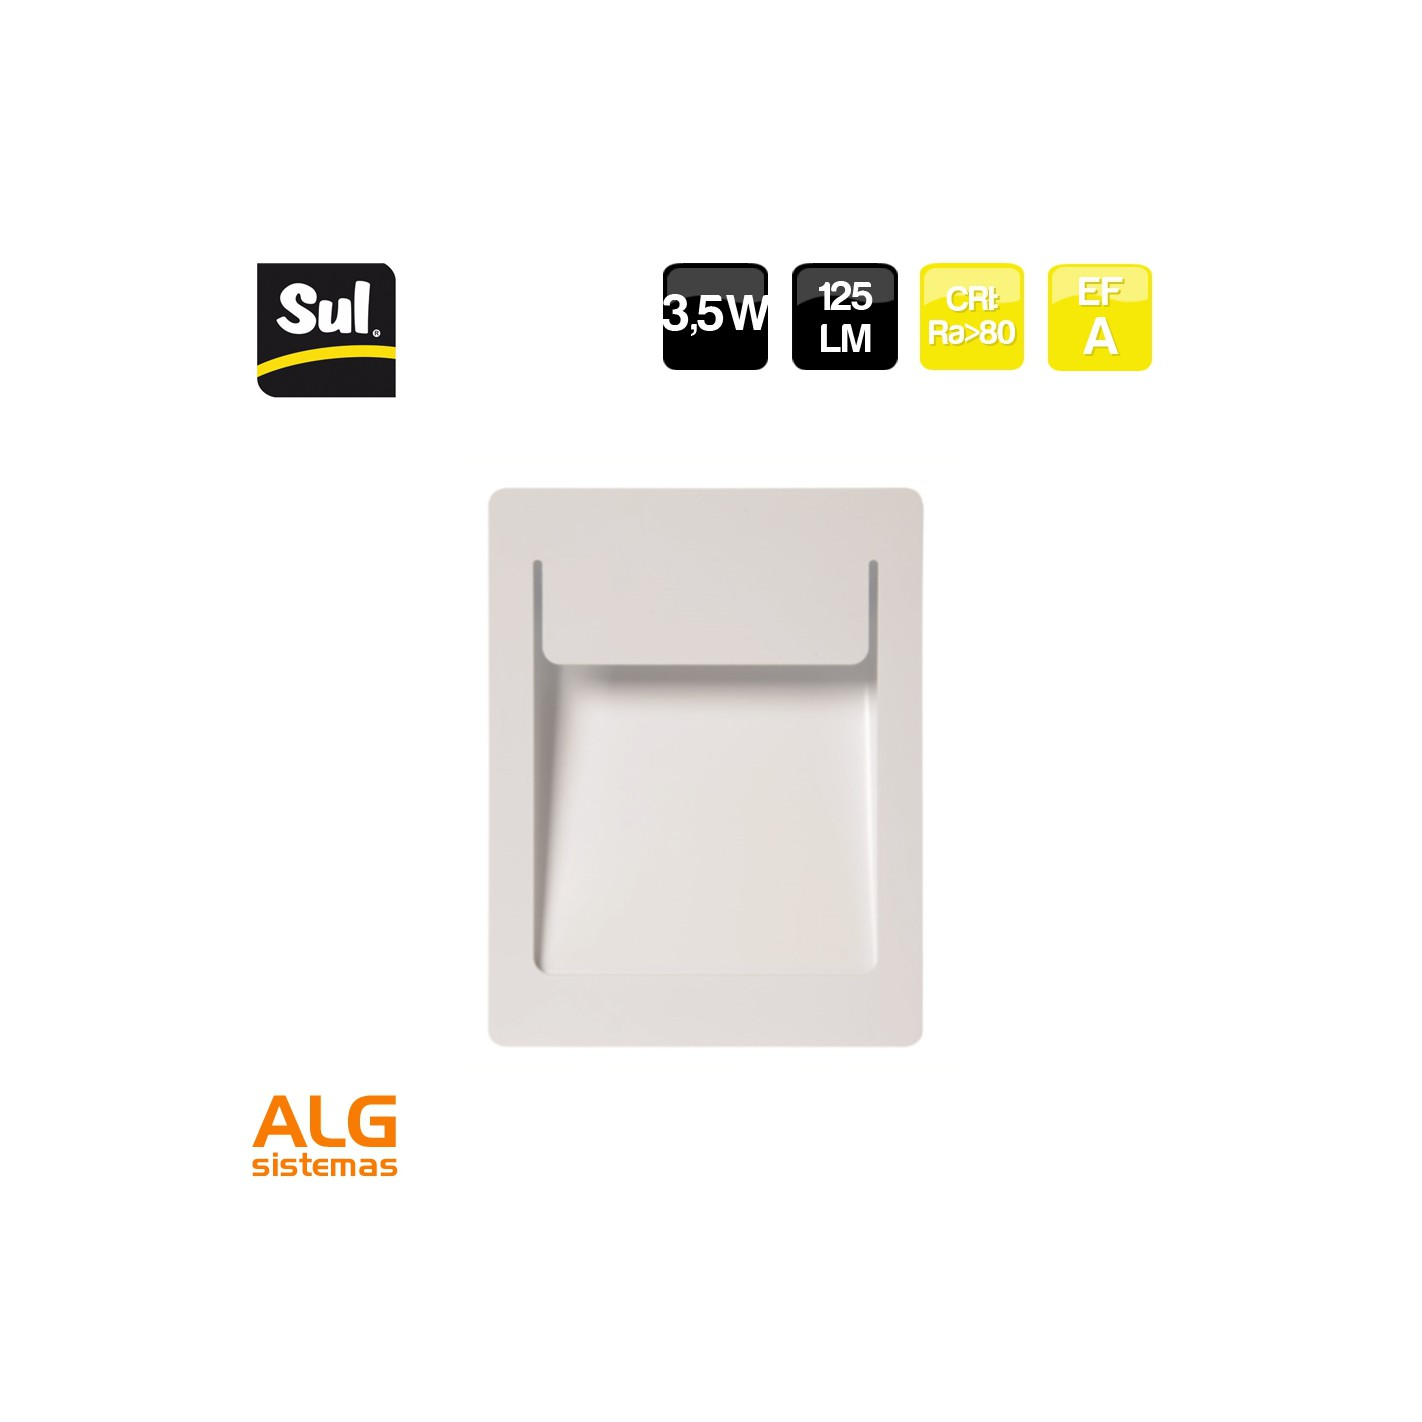 Empotrable Alg Lm Led De Sistemas Sul 5w Pared Bañador 3 125 dWoQxBerCE